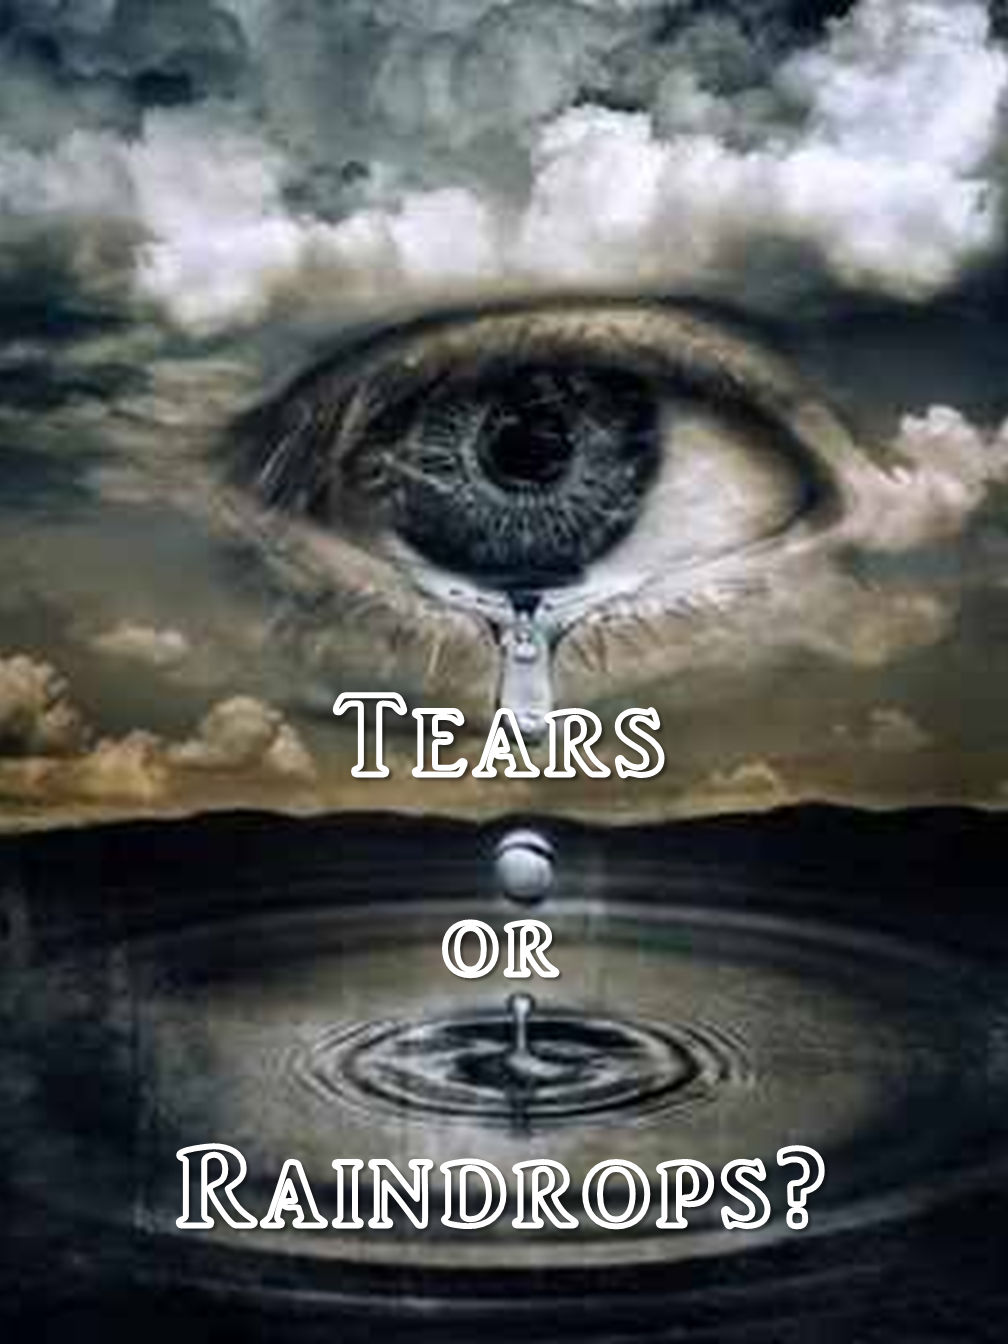 Tears or Raindrops?